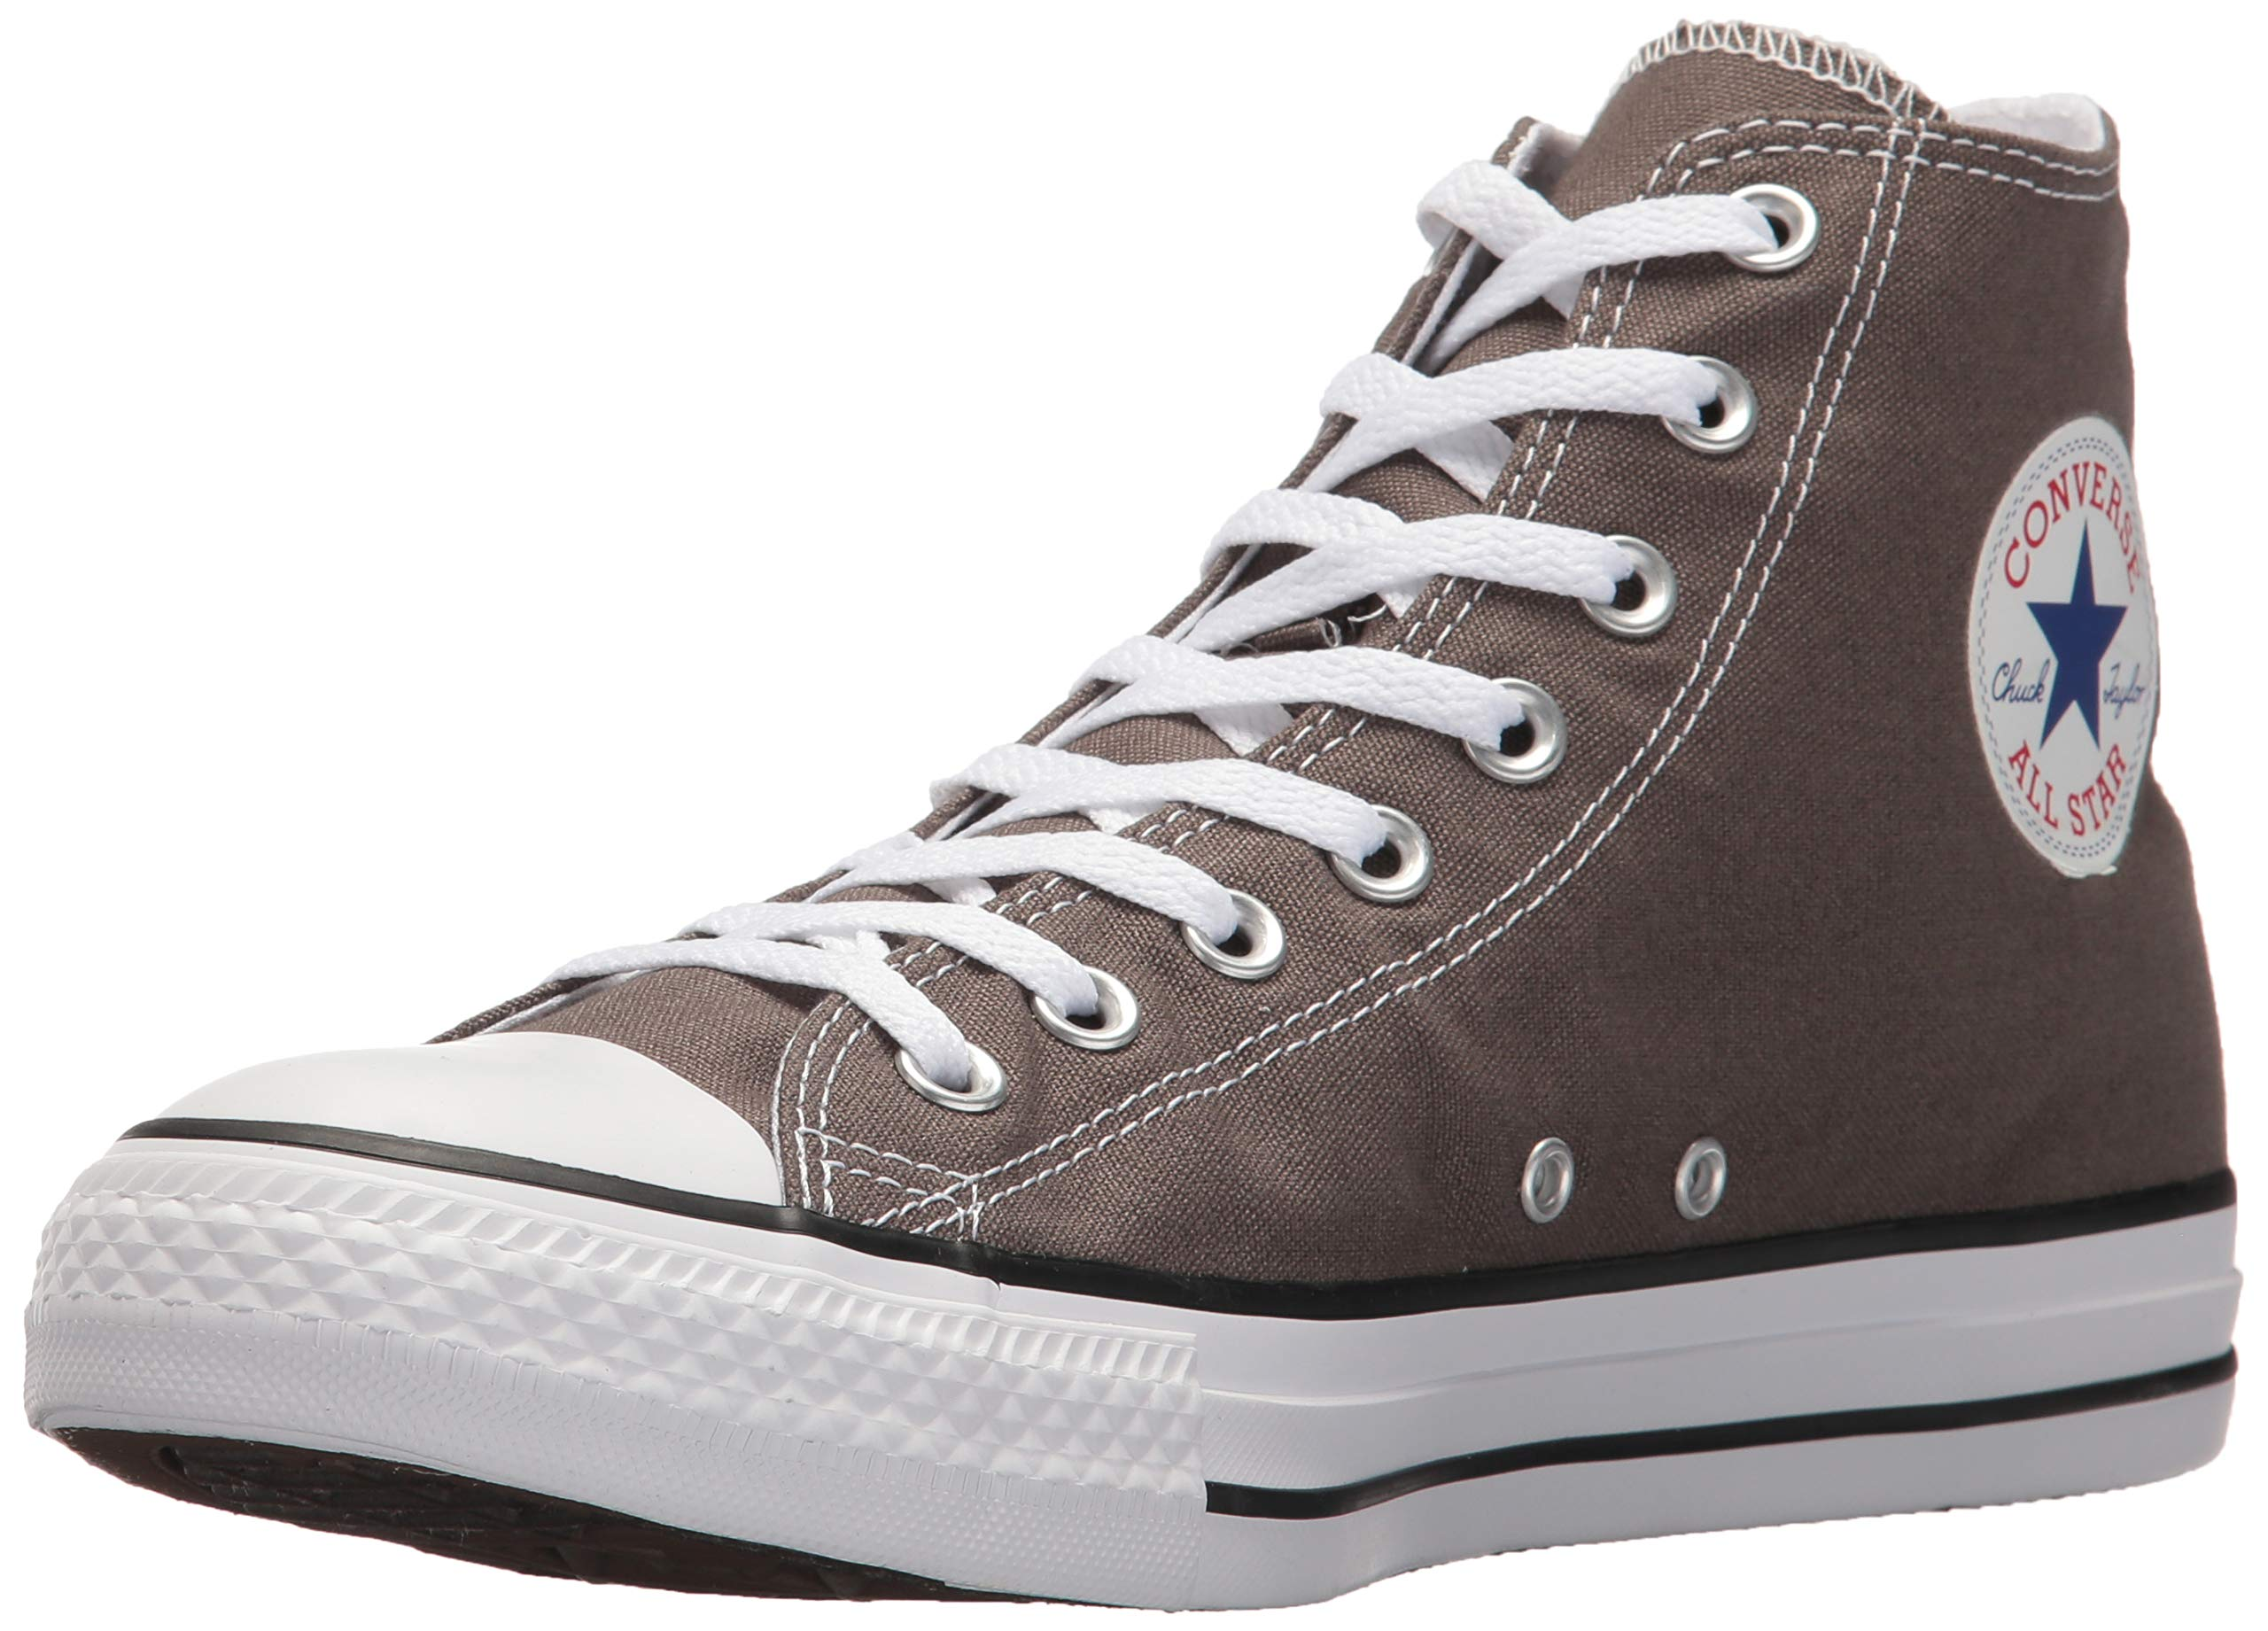 80032399151 Galleon - Converse Mens Chuck Taylor All Star High Top